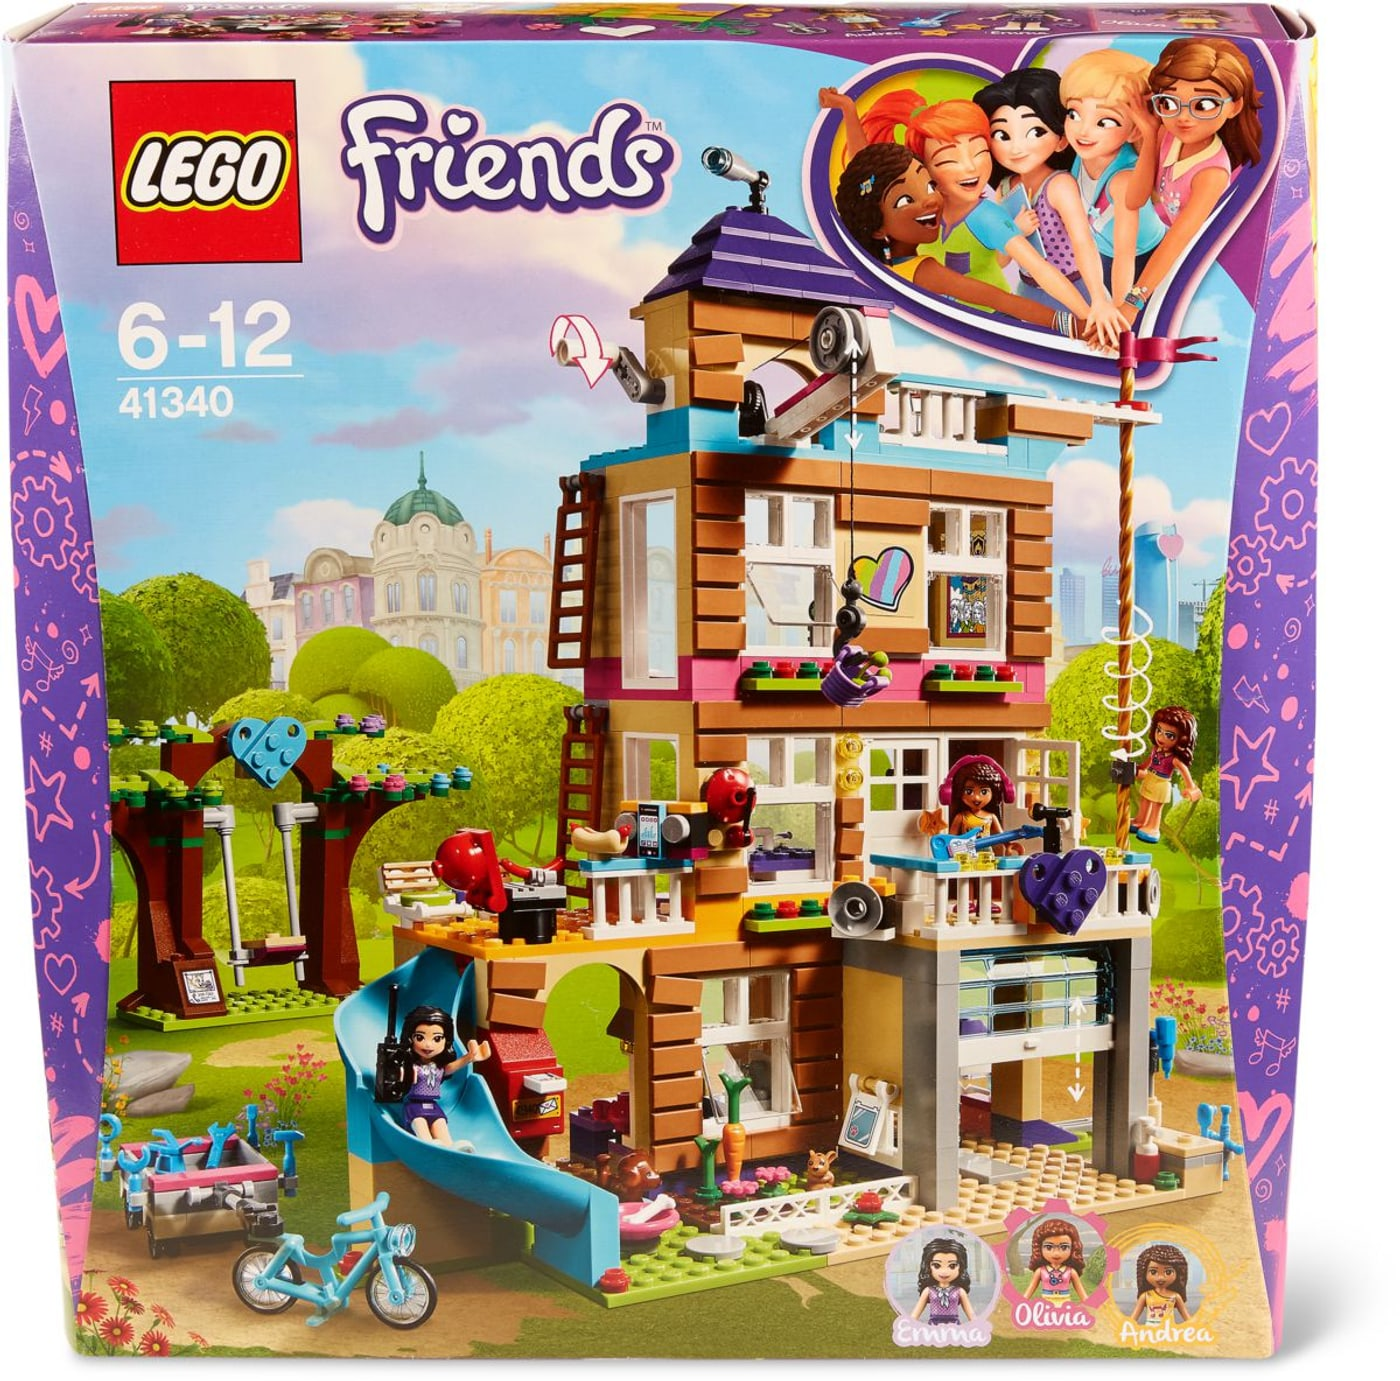 Lego De Maison 41340 L'amitié Friends La by76Yfg